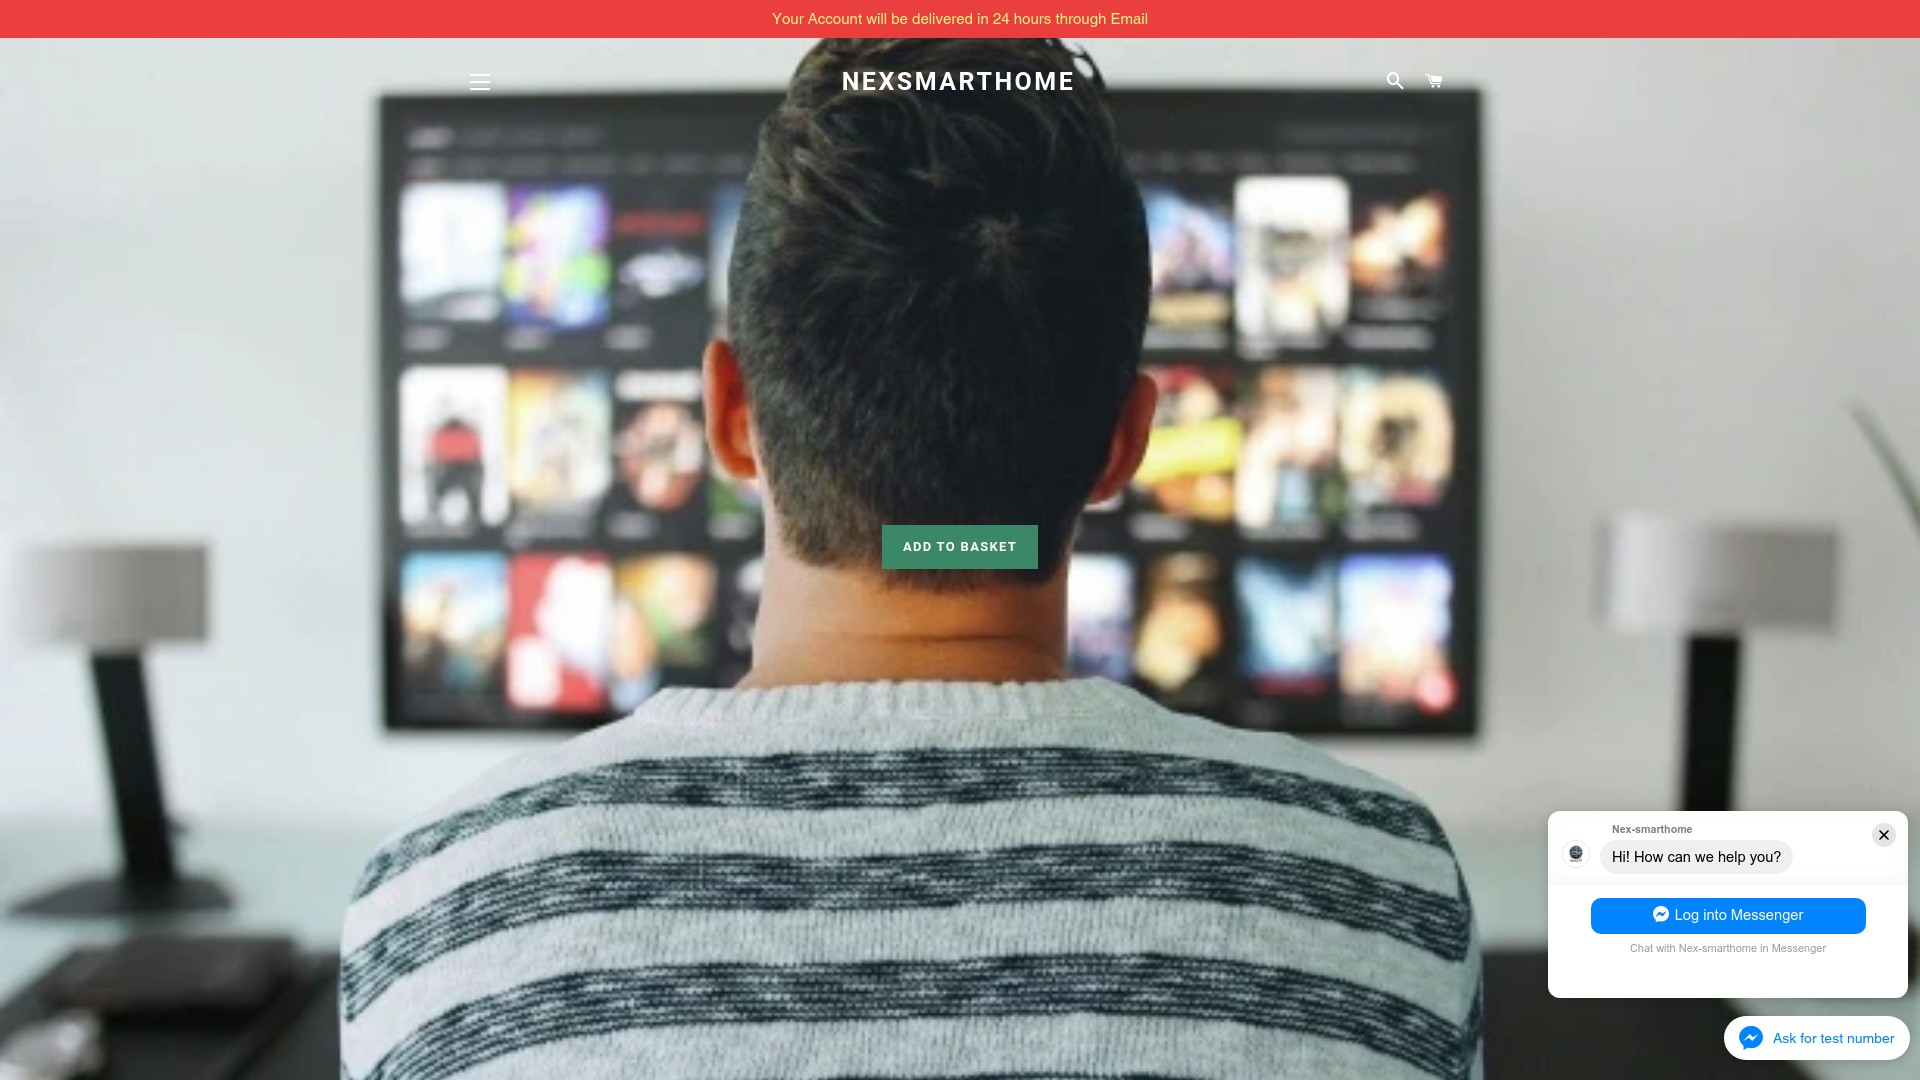 Is Nex Smarthome a Scam HD IPTV Subscription Service Provider?